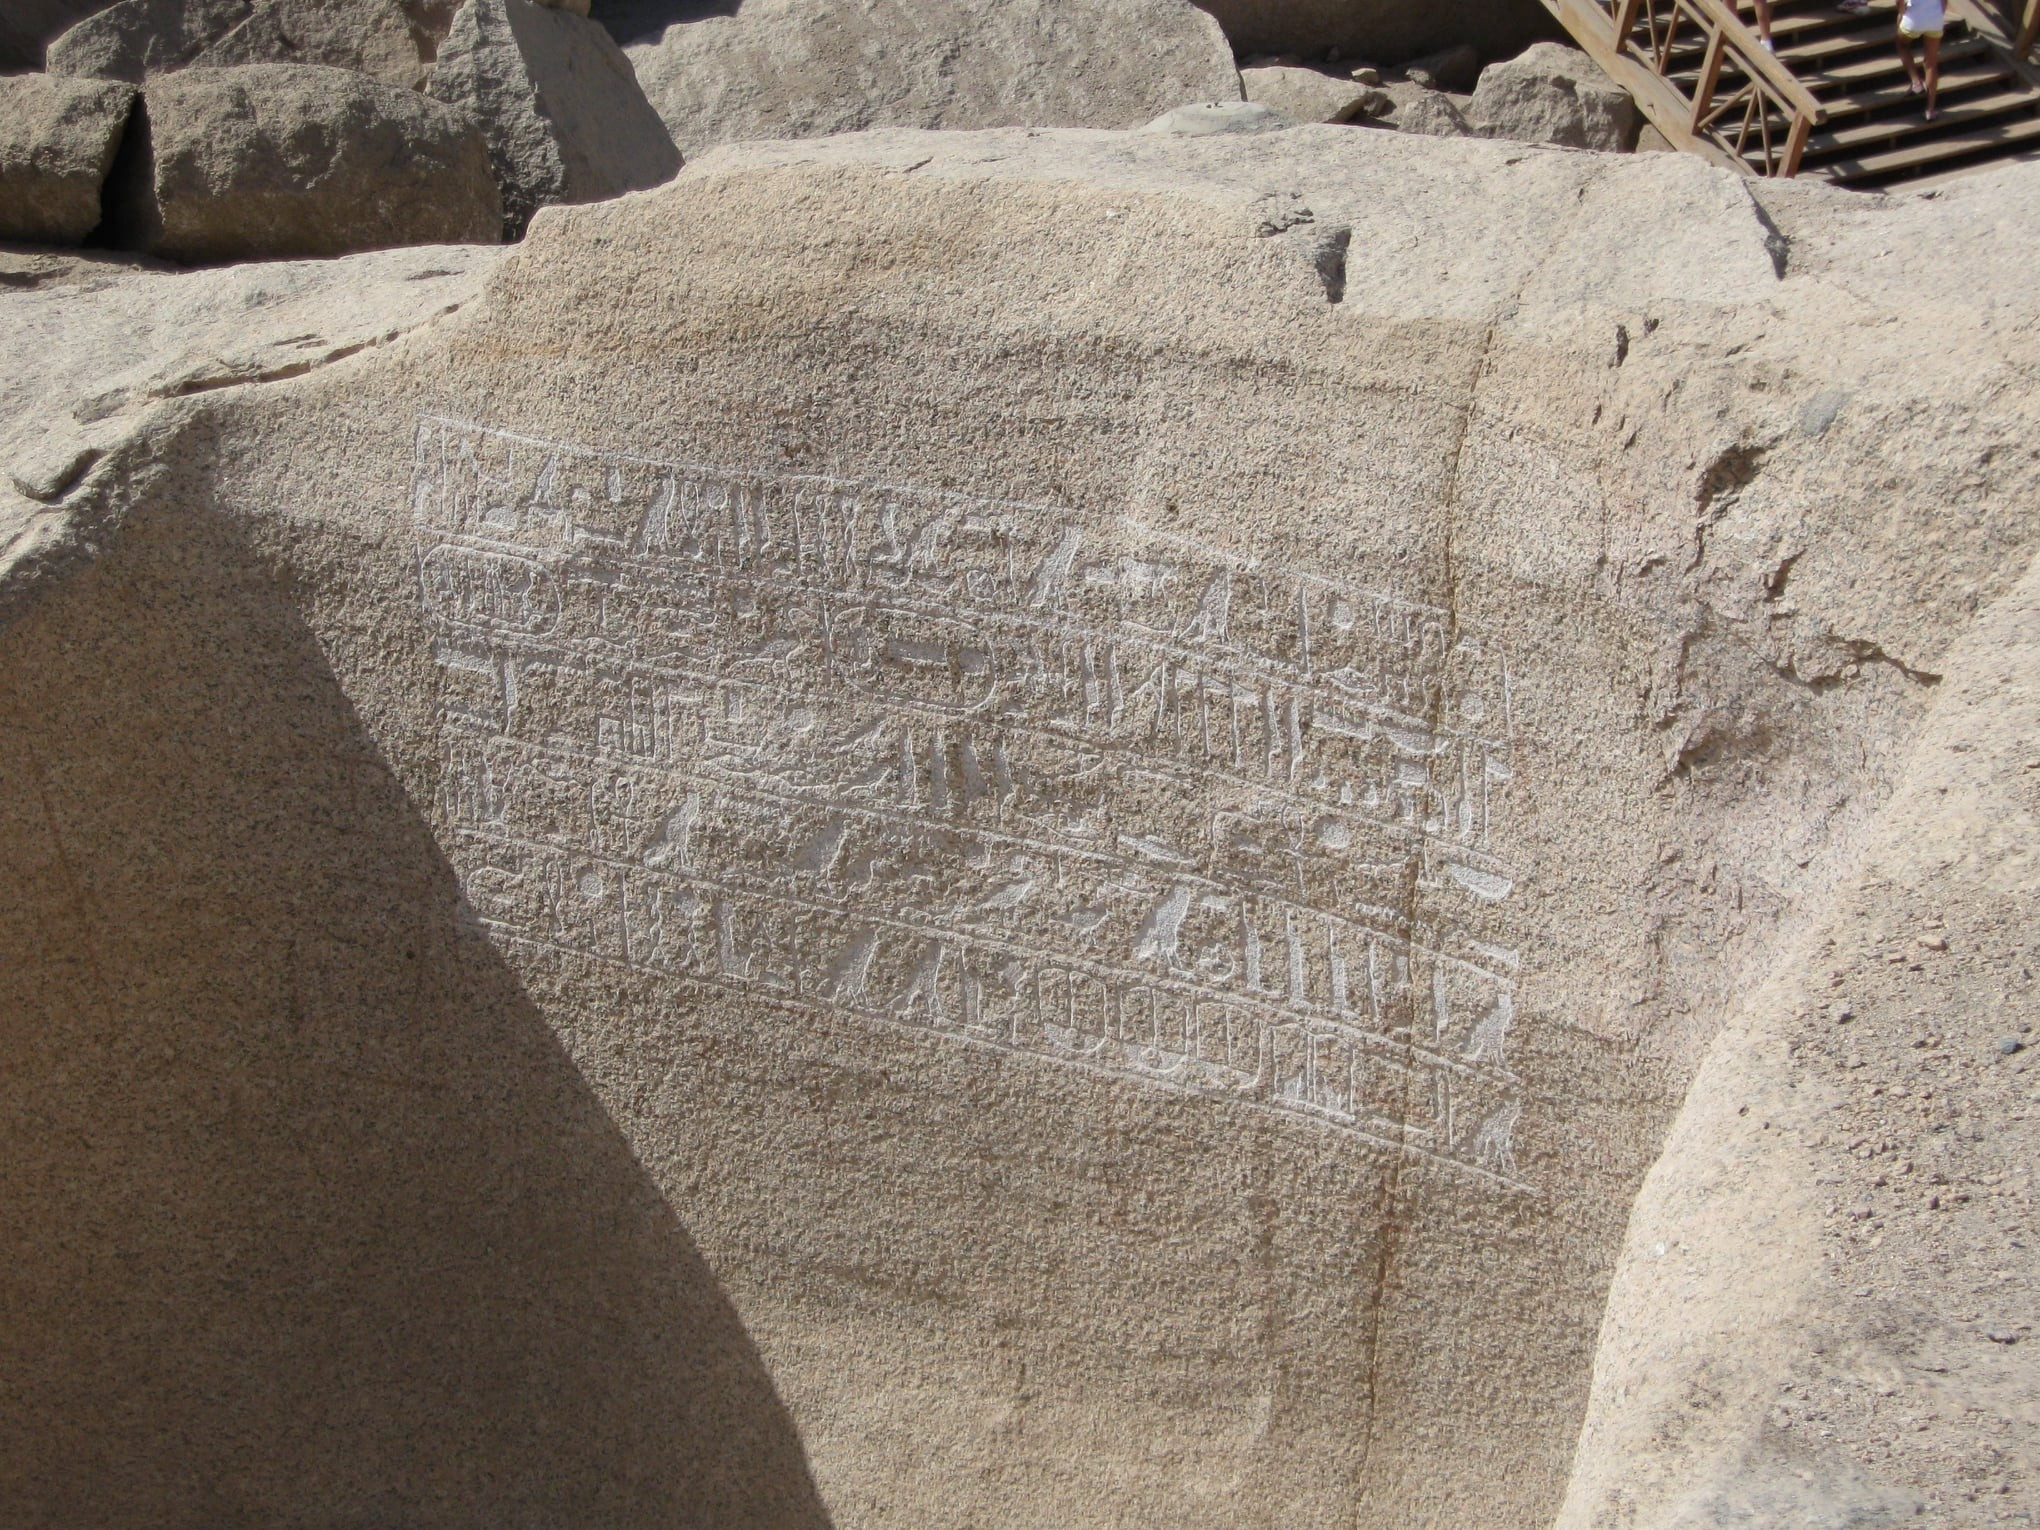 Aswan 2011 the granite for the sarcophagus of thutmose iii was quarried here according to this inscription kimberly sanders